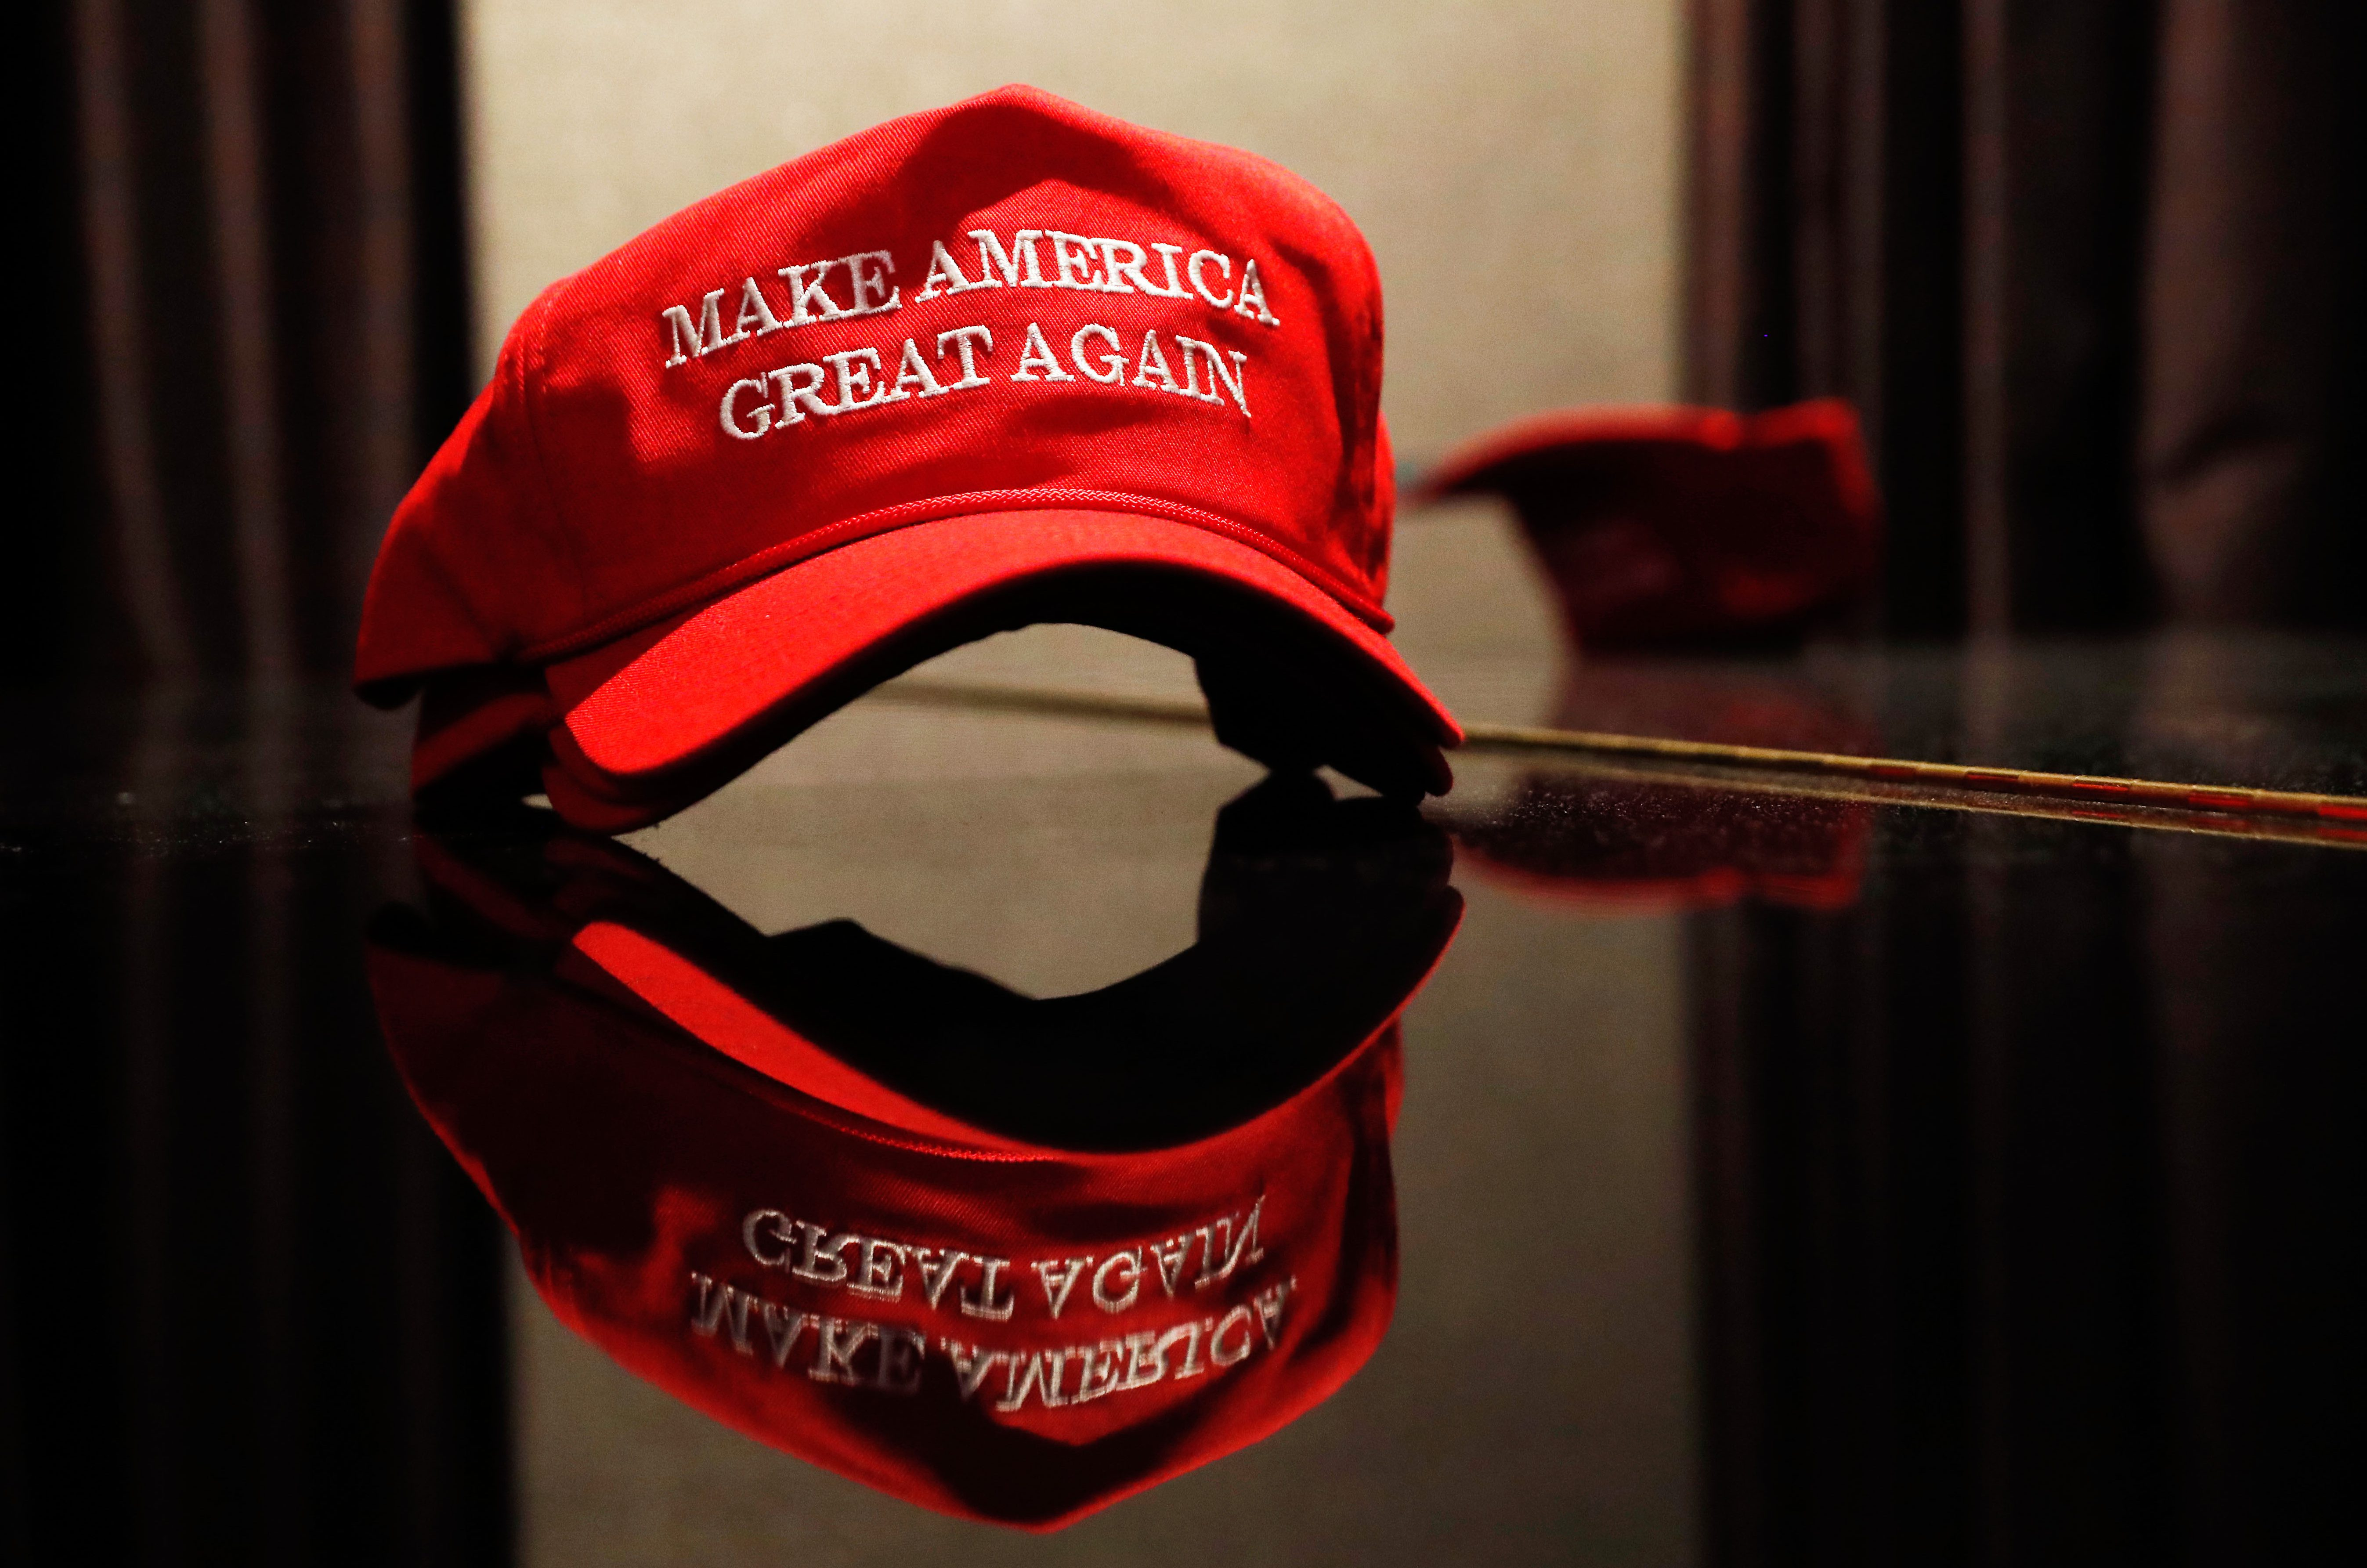 A Trump hat sits on a table outside of the rally for Republican U.S. presidential nominee Donald Trump in New York City, New York, U.S. November 8, 2016.